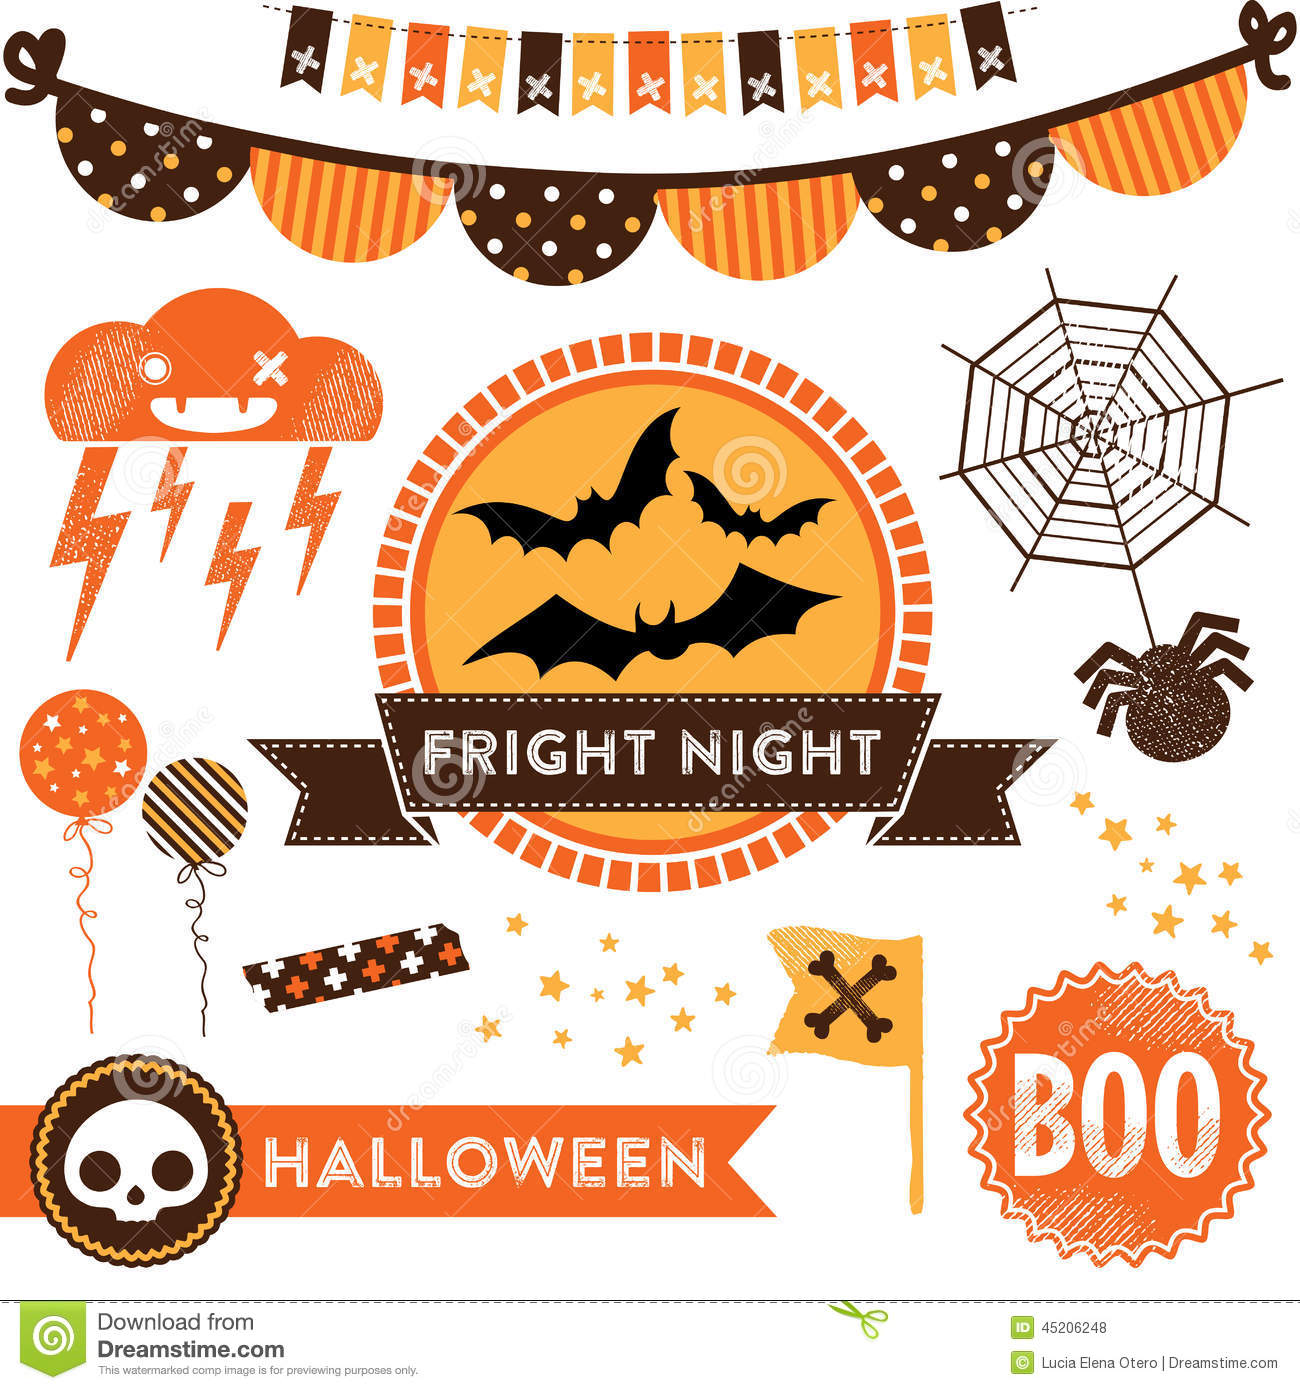 Halloween Clipart Vektor Abbildung Illustration Von Girlanden